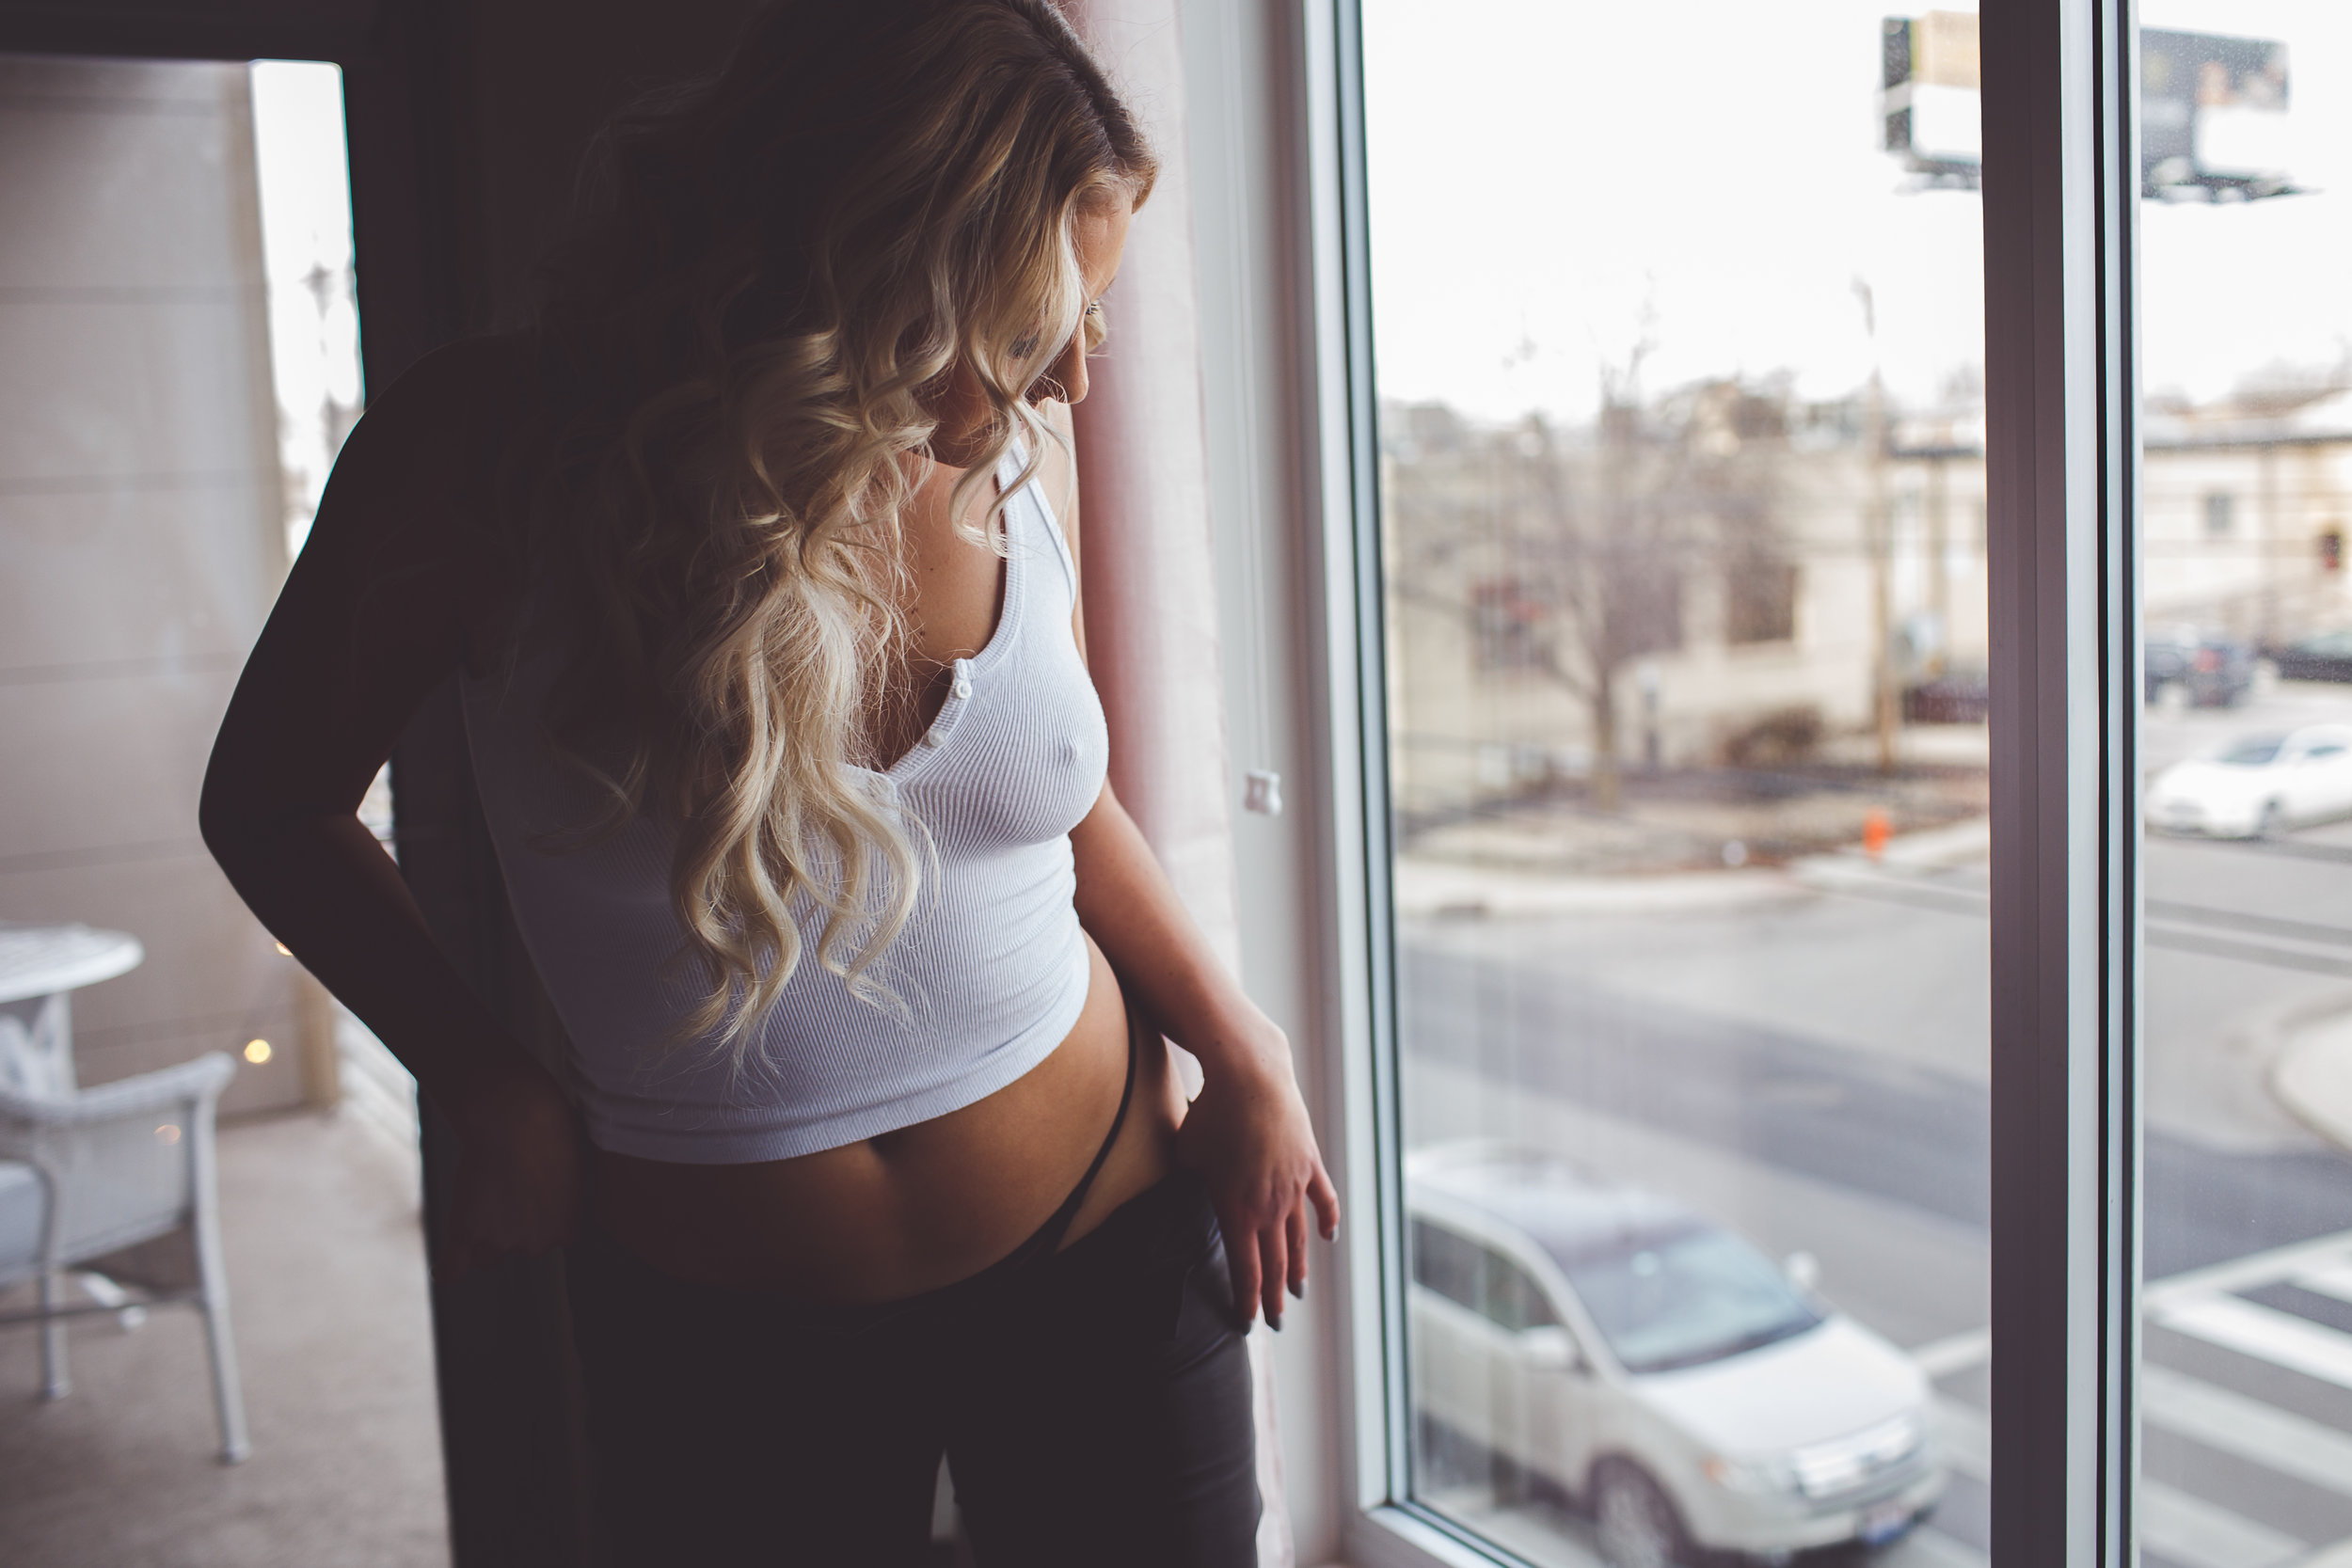 Columbus-Ohio-Boudoir-Photos-Ohio-intimate-womxn-portrait-photographer-woman-wearing-black-leather-white-tank-pulls-down-pants-revealing-hip-pretty-long-blonde-hair-extensions-window-street-marcyharrisortiz.jpg